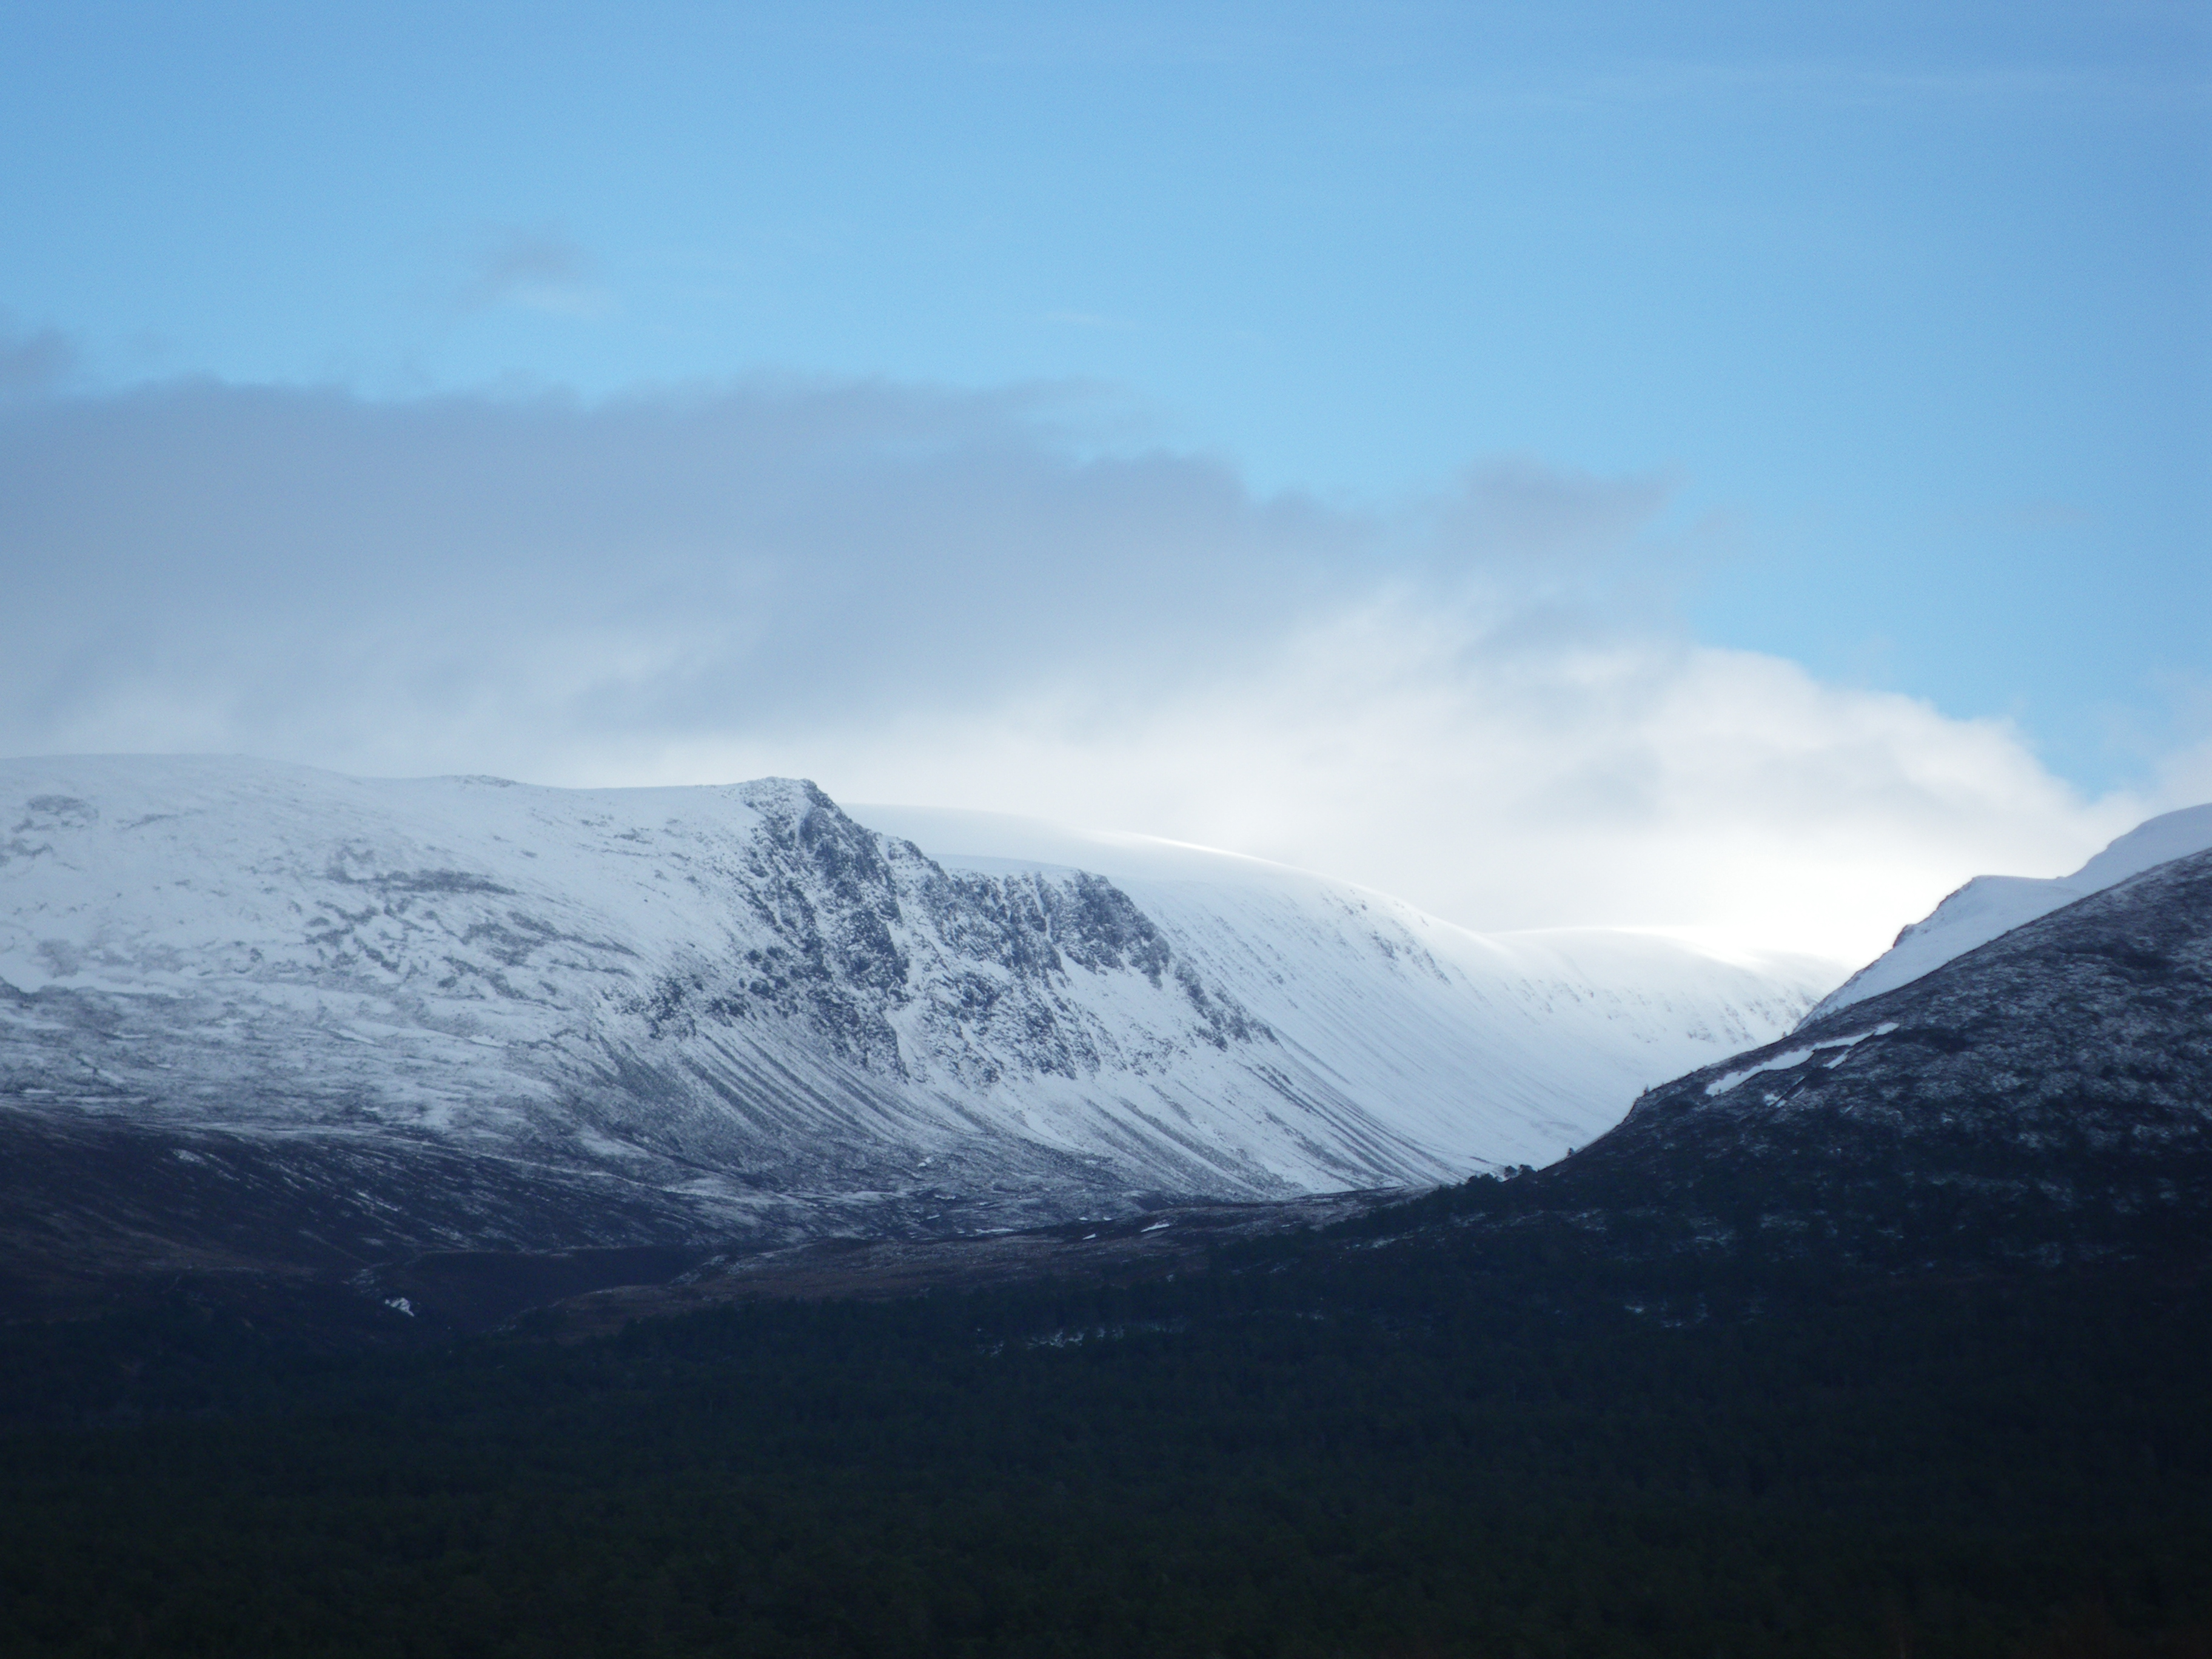 Lurcher's Crag and the Lairig Ghru